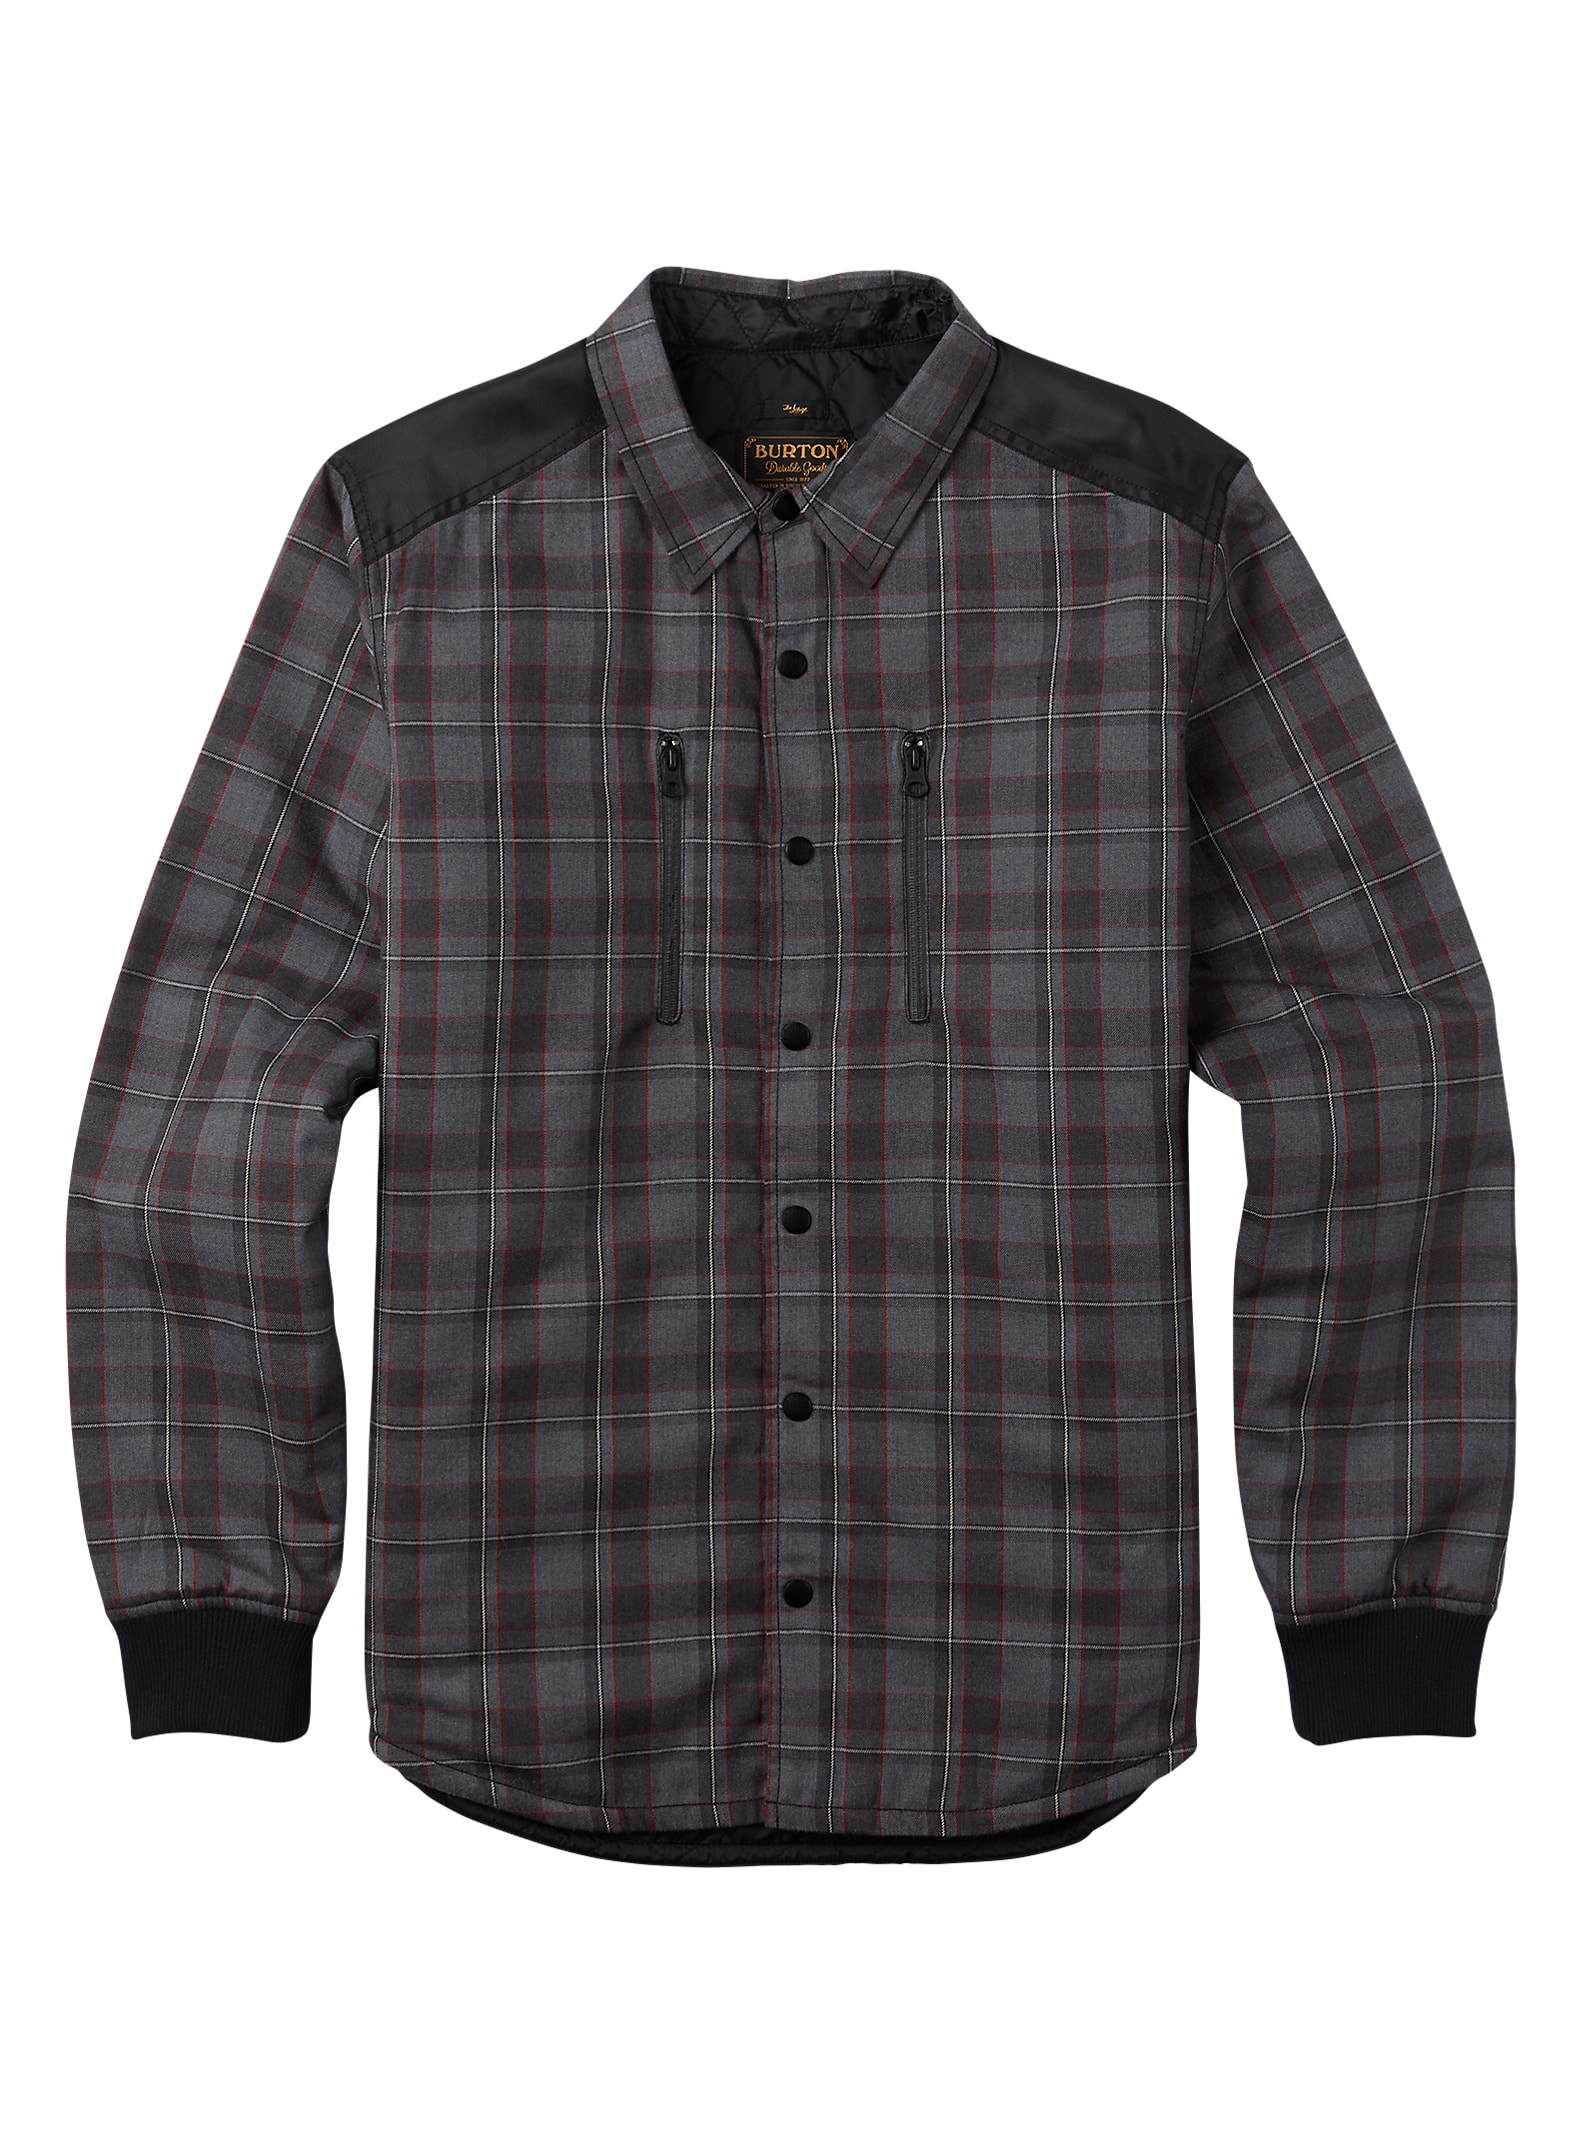 Burton Field Quilted Flannel | Burton Snowboards Fall 16 : quilted flannel jacket with hood - Adamdwight.com